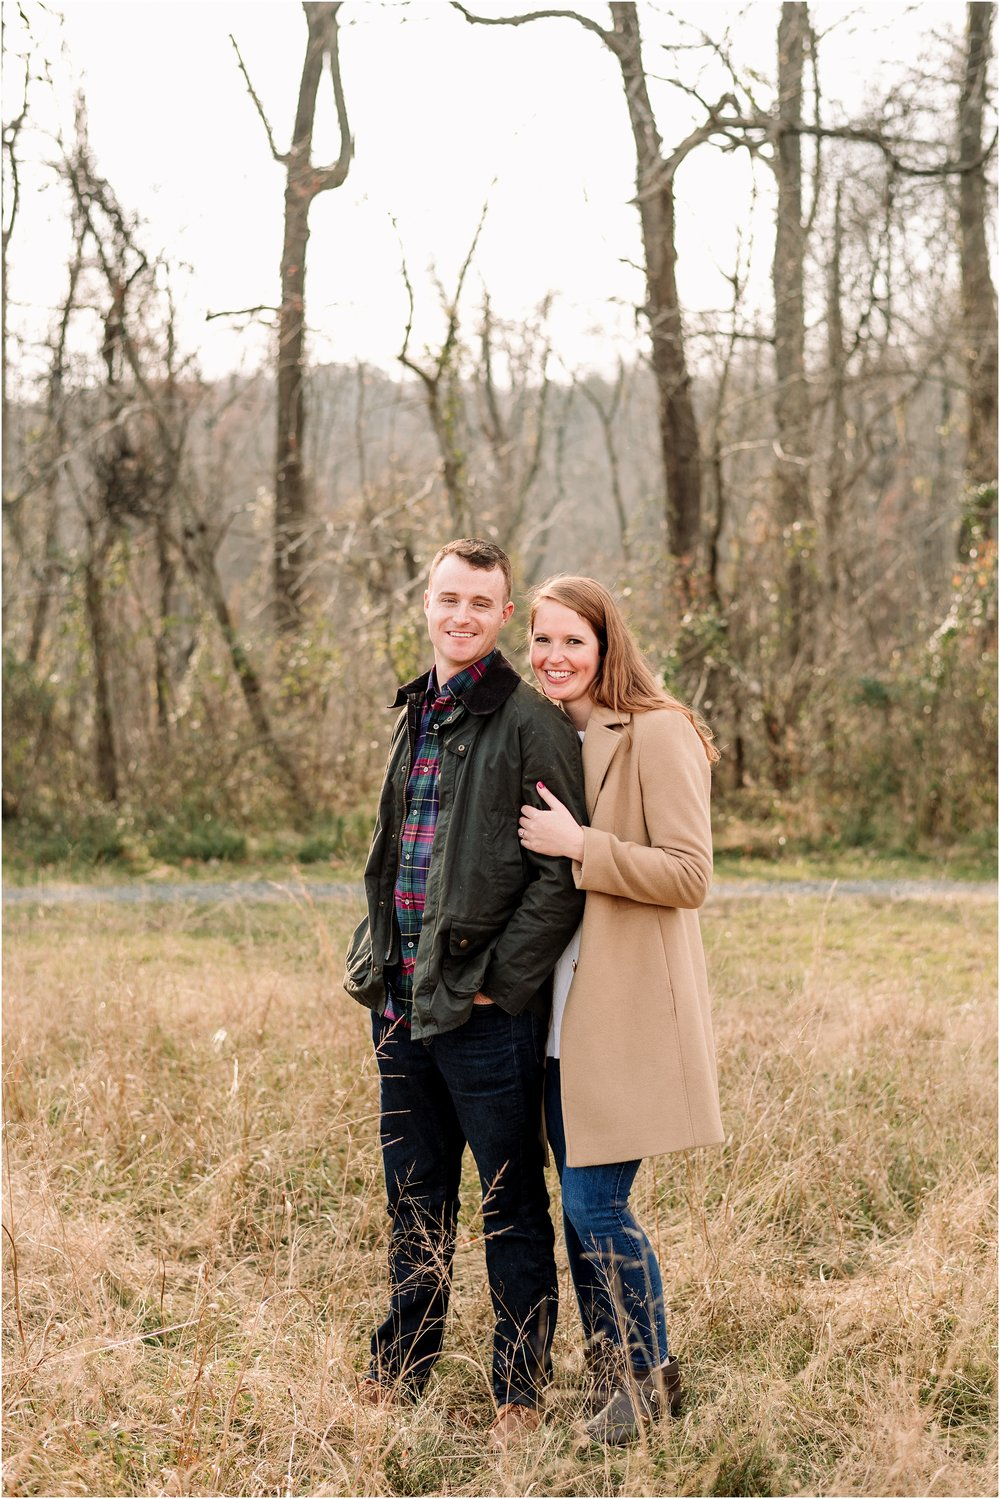 hannah leigh photography Annapolis MD Engagement Session_2413.jpg